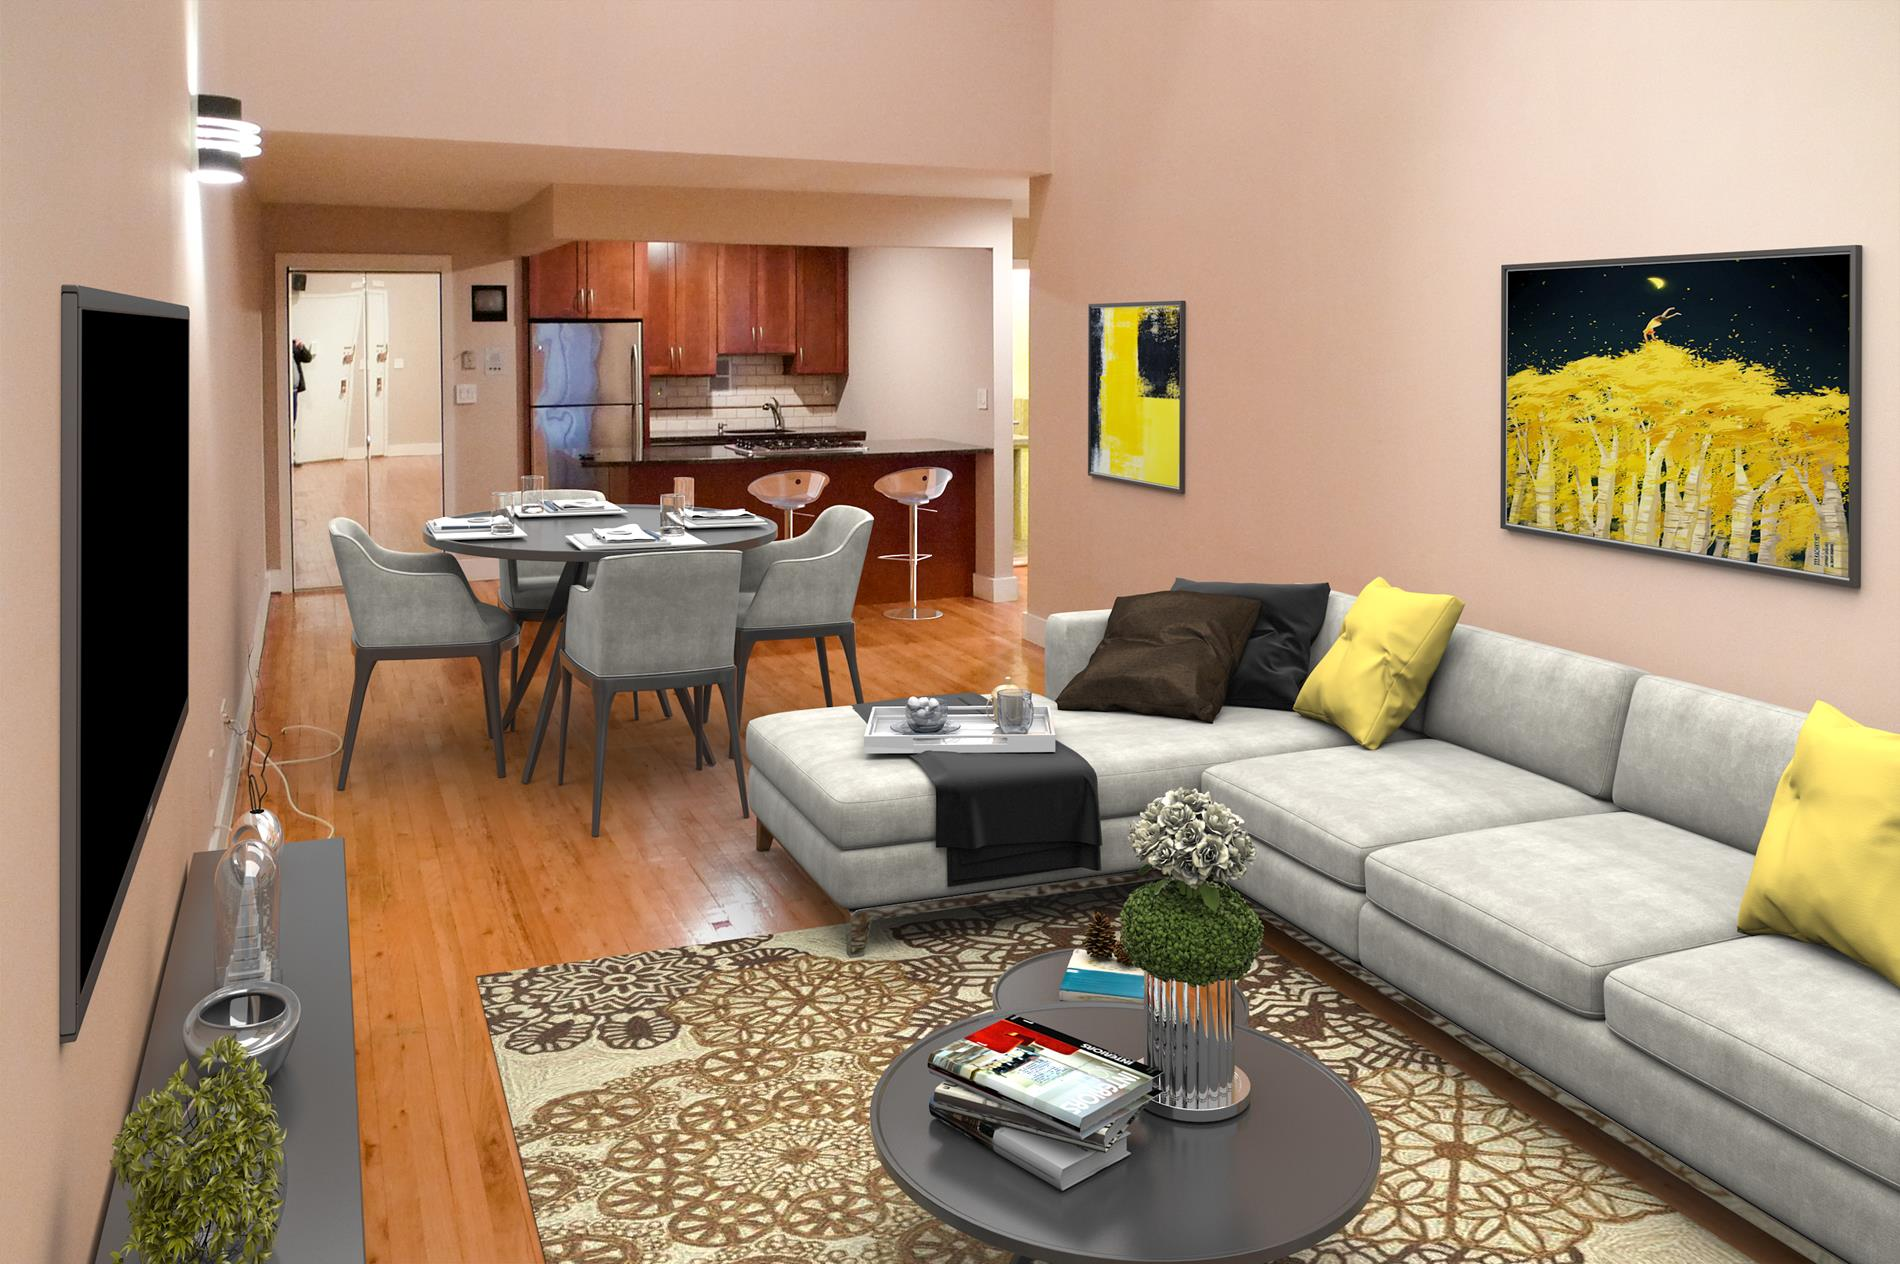 356 Broadway, Apt 3-D, Manhattan, New York 10013